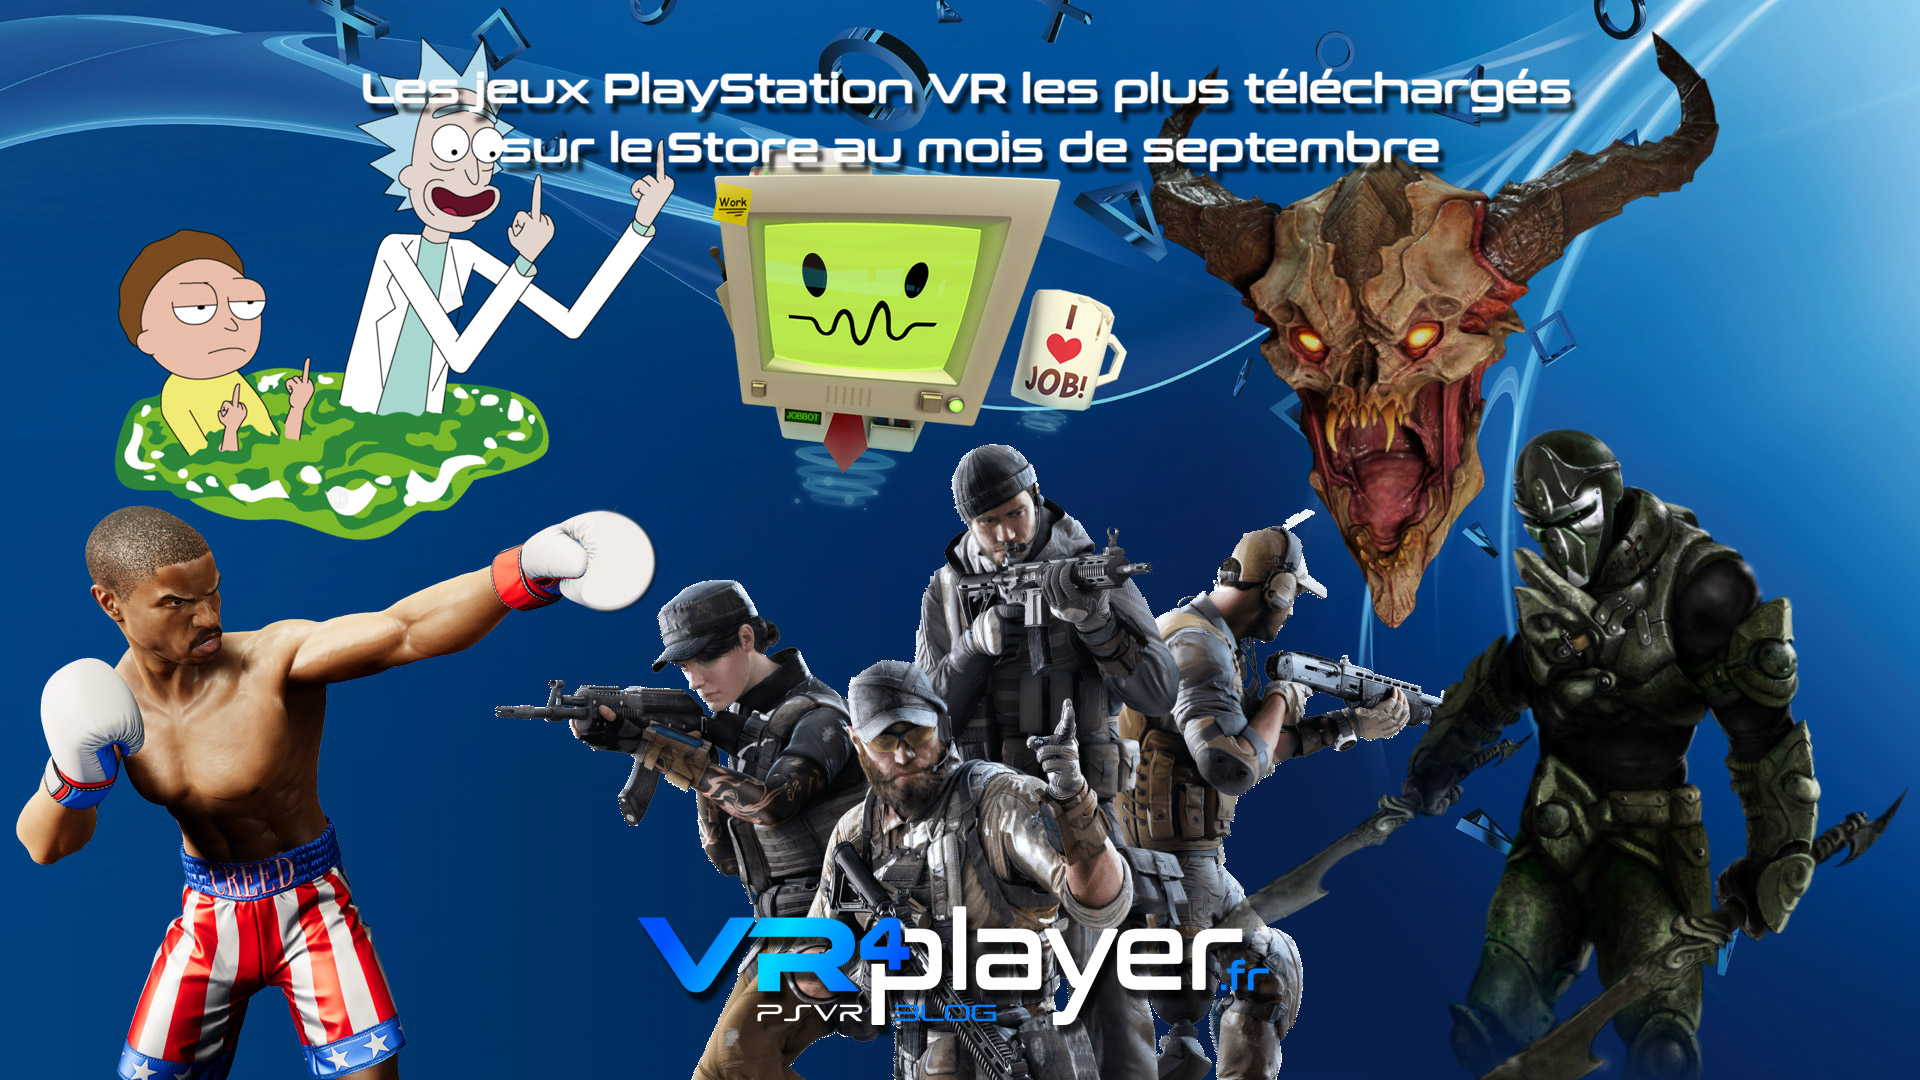 Le top des ventes PSVR de septembre vr4player.fr